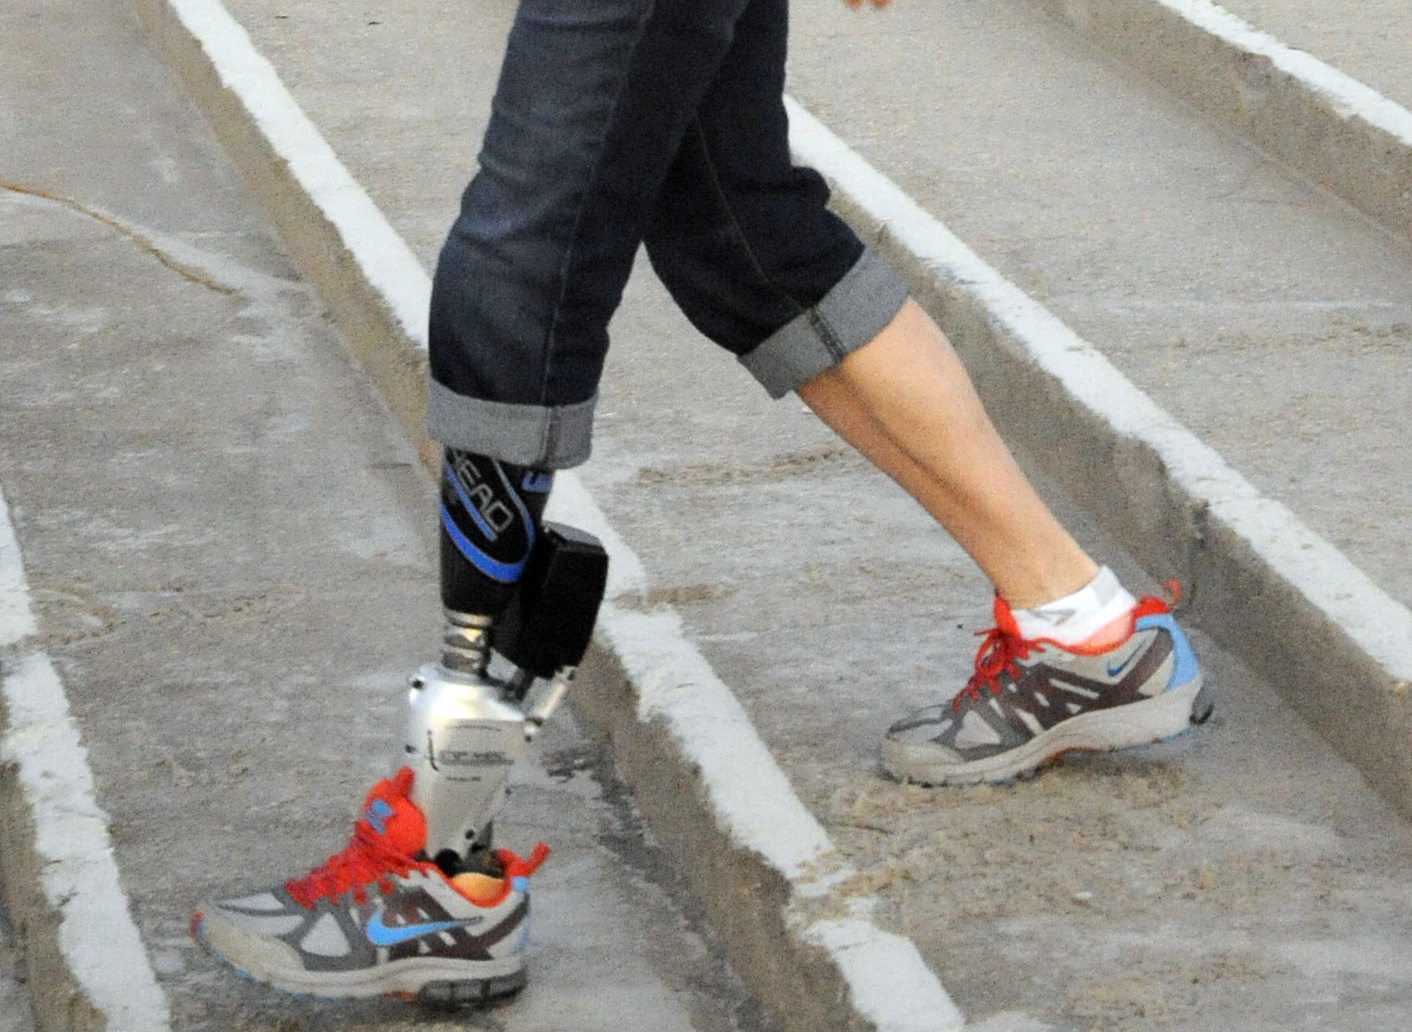 iWalk's bionic foot and ankle. (astepaheadprosthetics.wordpress.com)